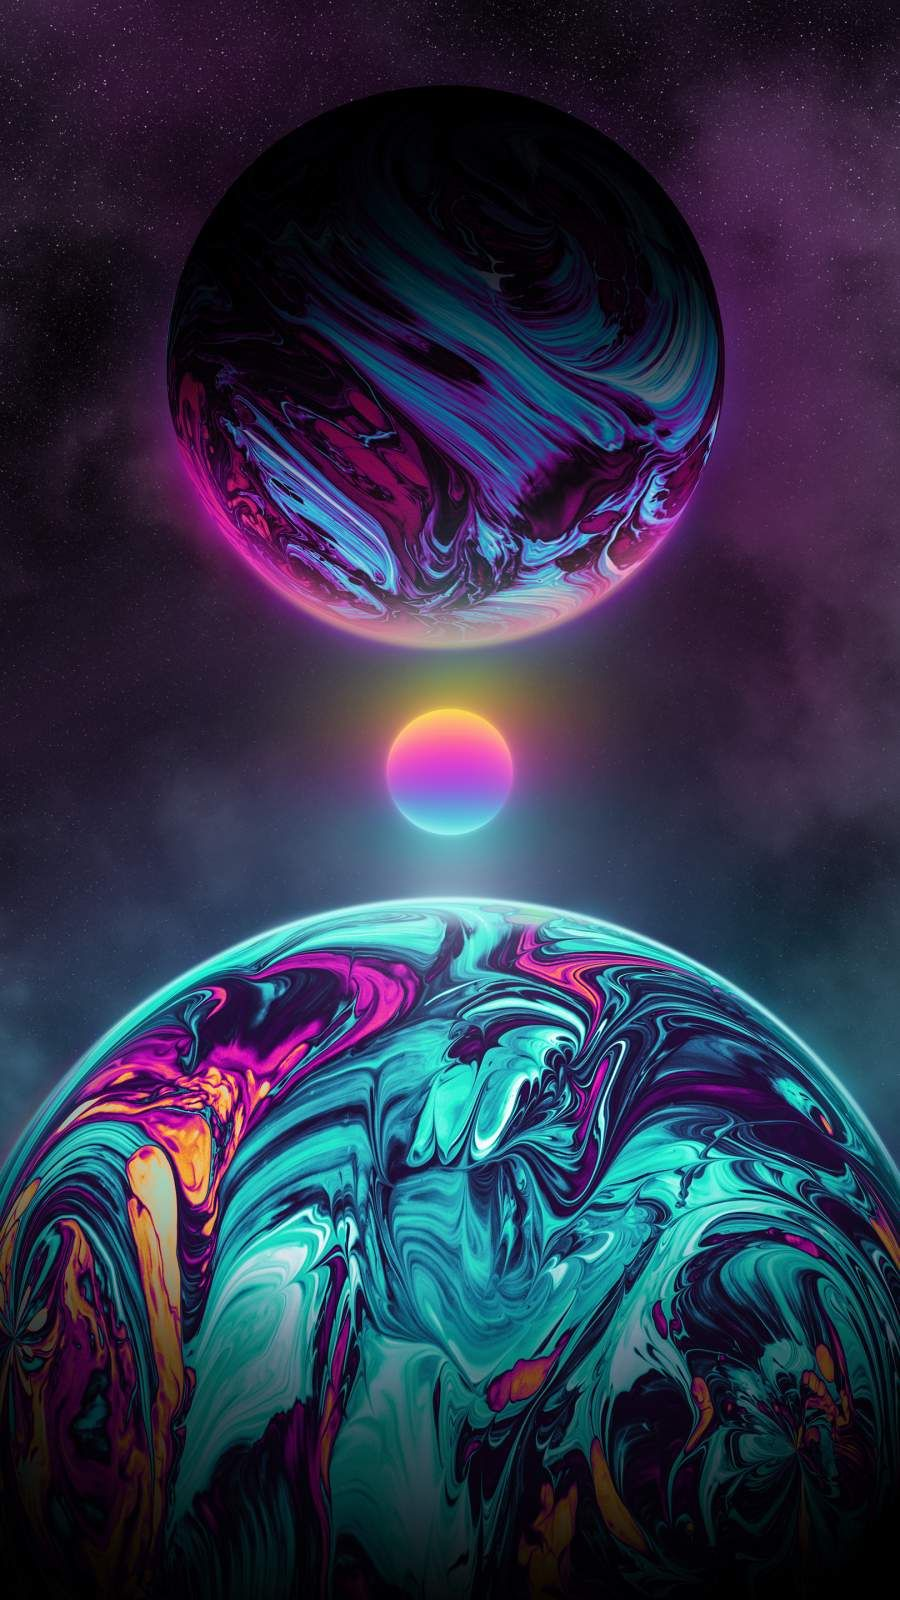 Art of Space iPhone Wallpaper - iPhone Wallpapers